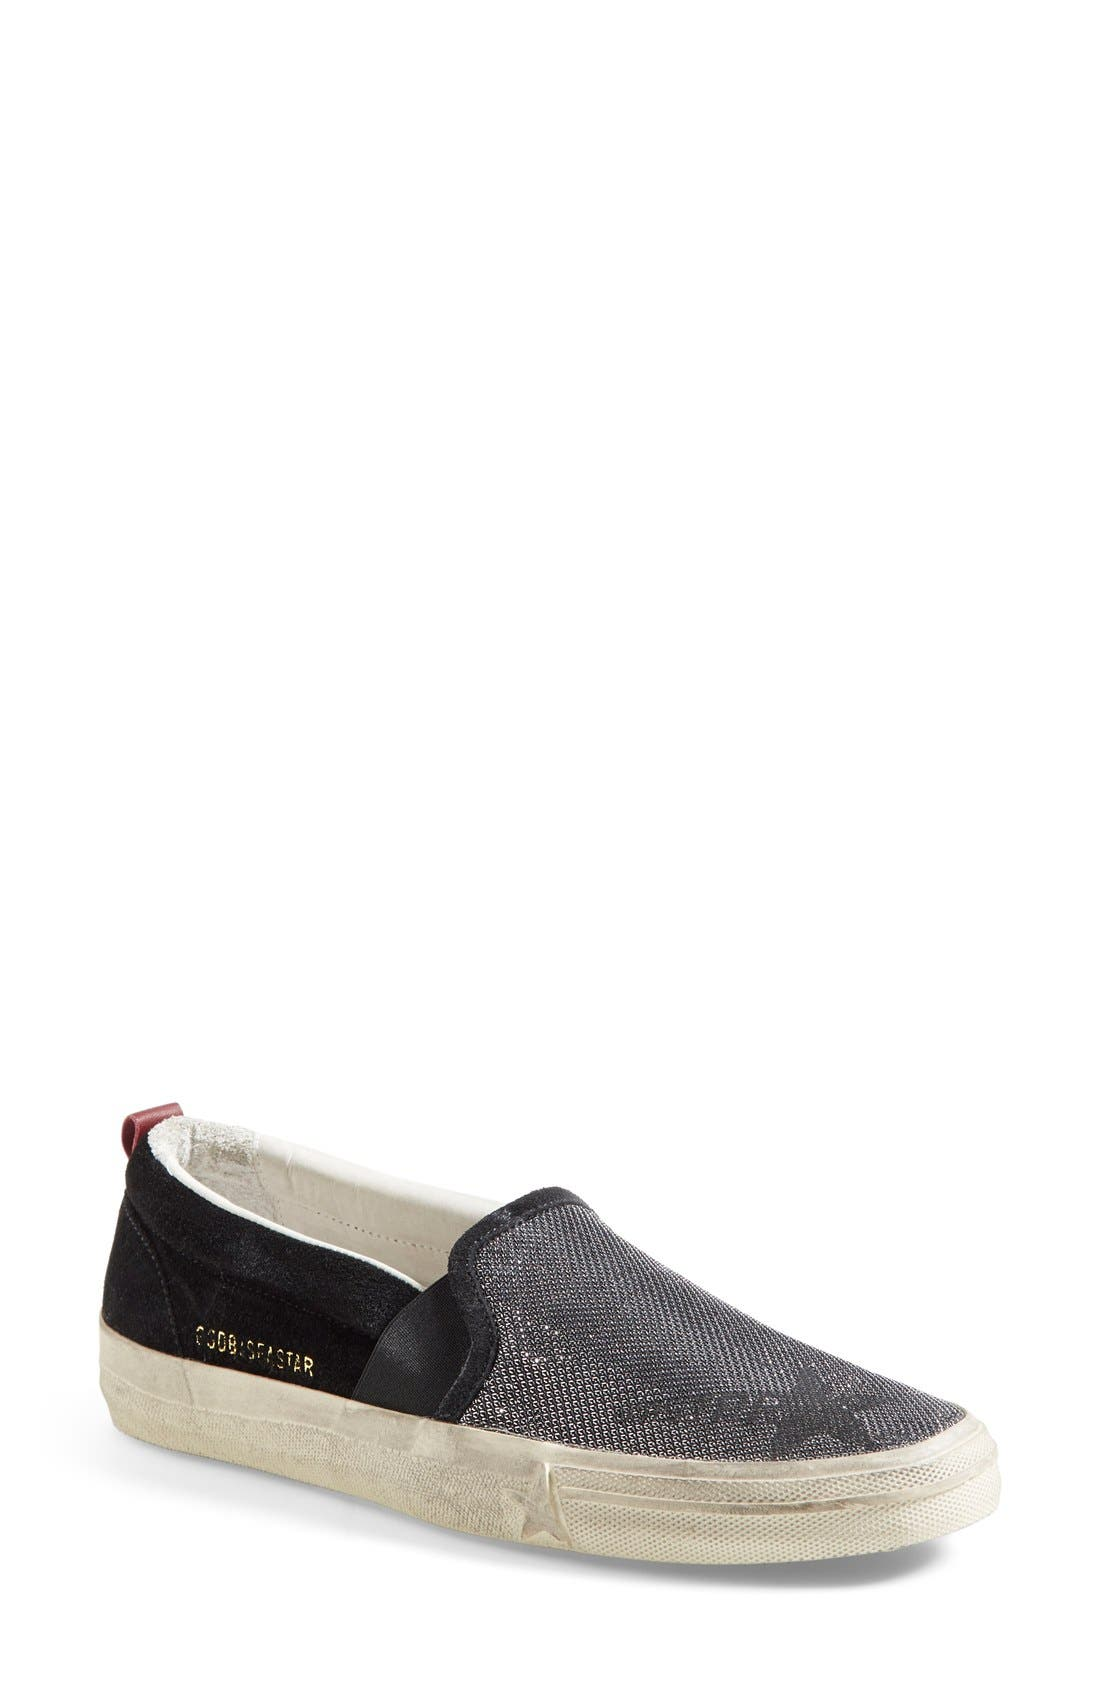 Main Image - Golden Goose 'Sea Star' Slip-On Sneaker (Women)